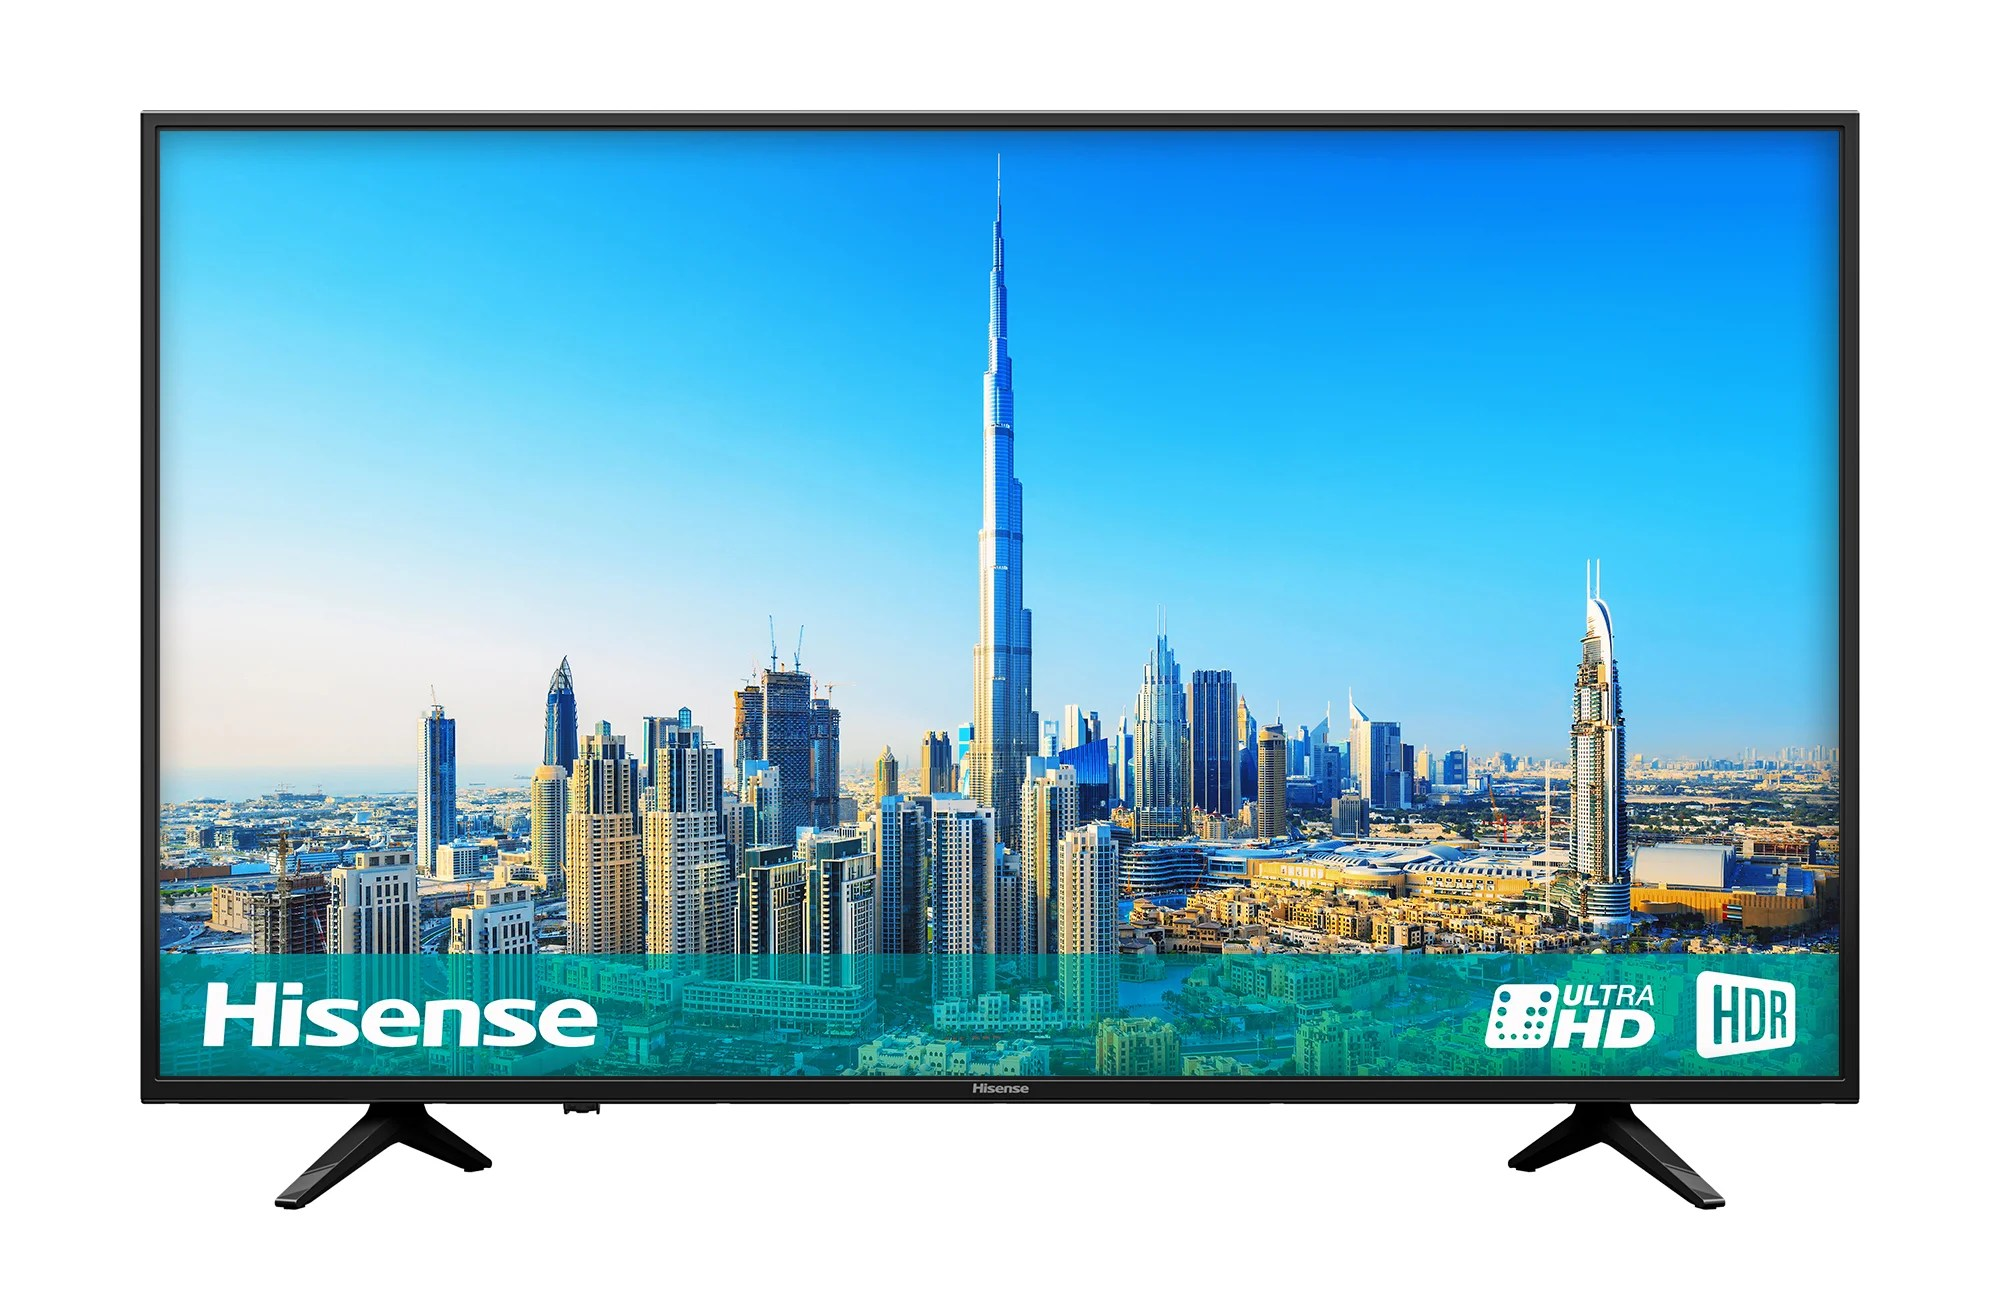 Toys R Us Küchenspielzeug Hisense A6200 Review Trusted Reviews